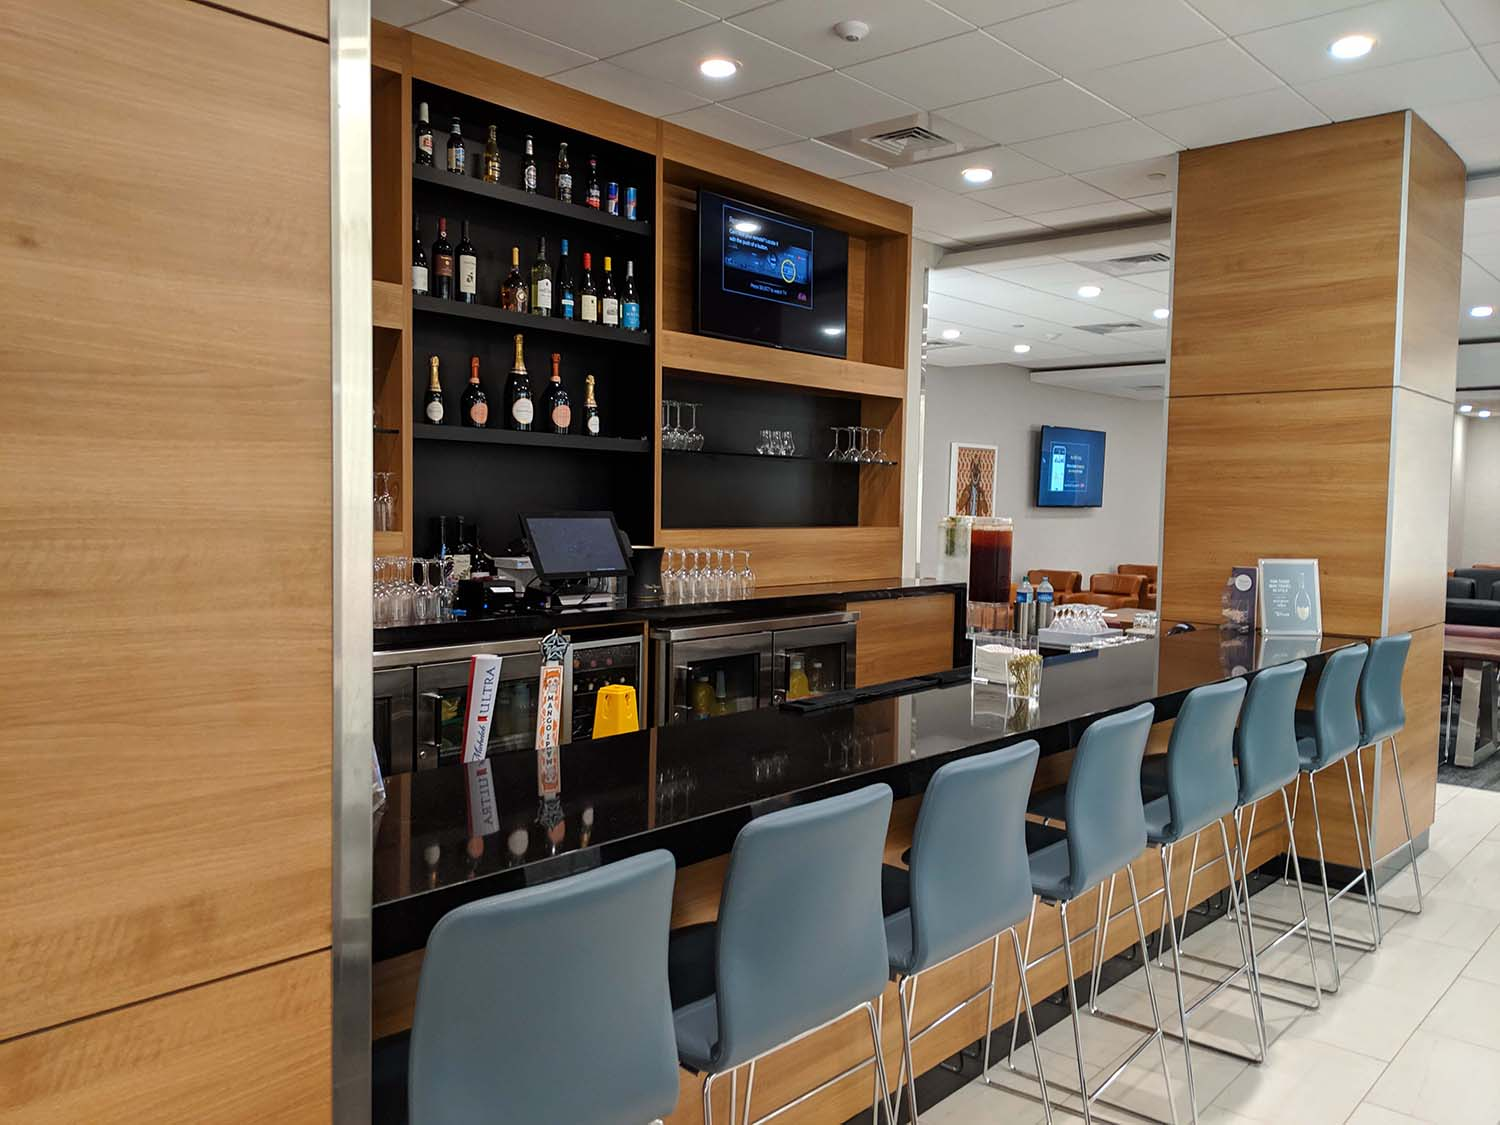 Delta Sky club in Fort lauderdale bar